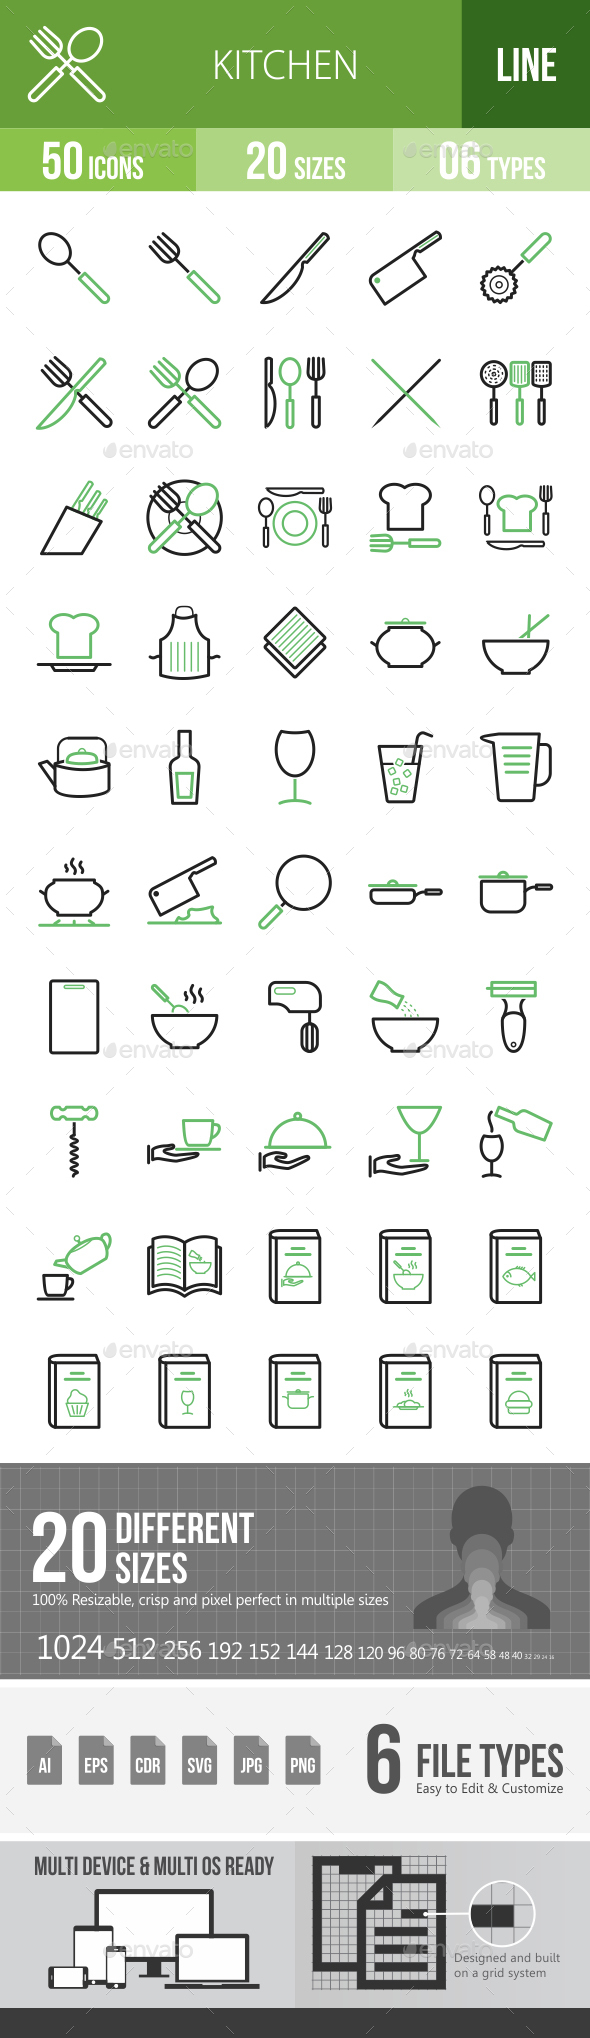 Kitchen Line Green & Black Icons - Icons